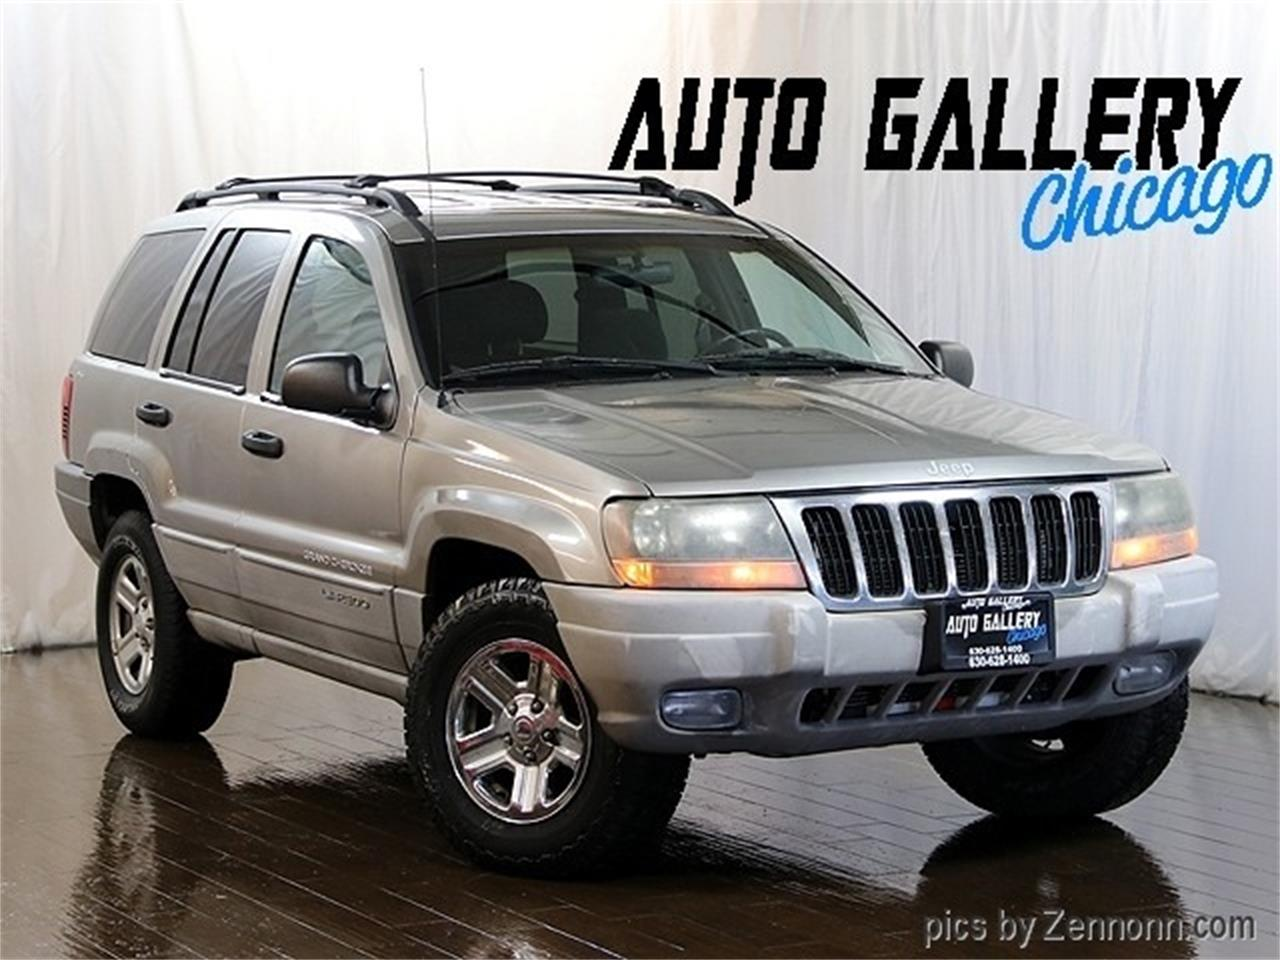 for sale 1999 jeep grand cherokee in addison, illinois cars - addison, il at geebo